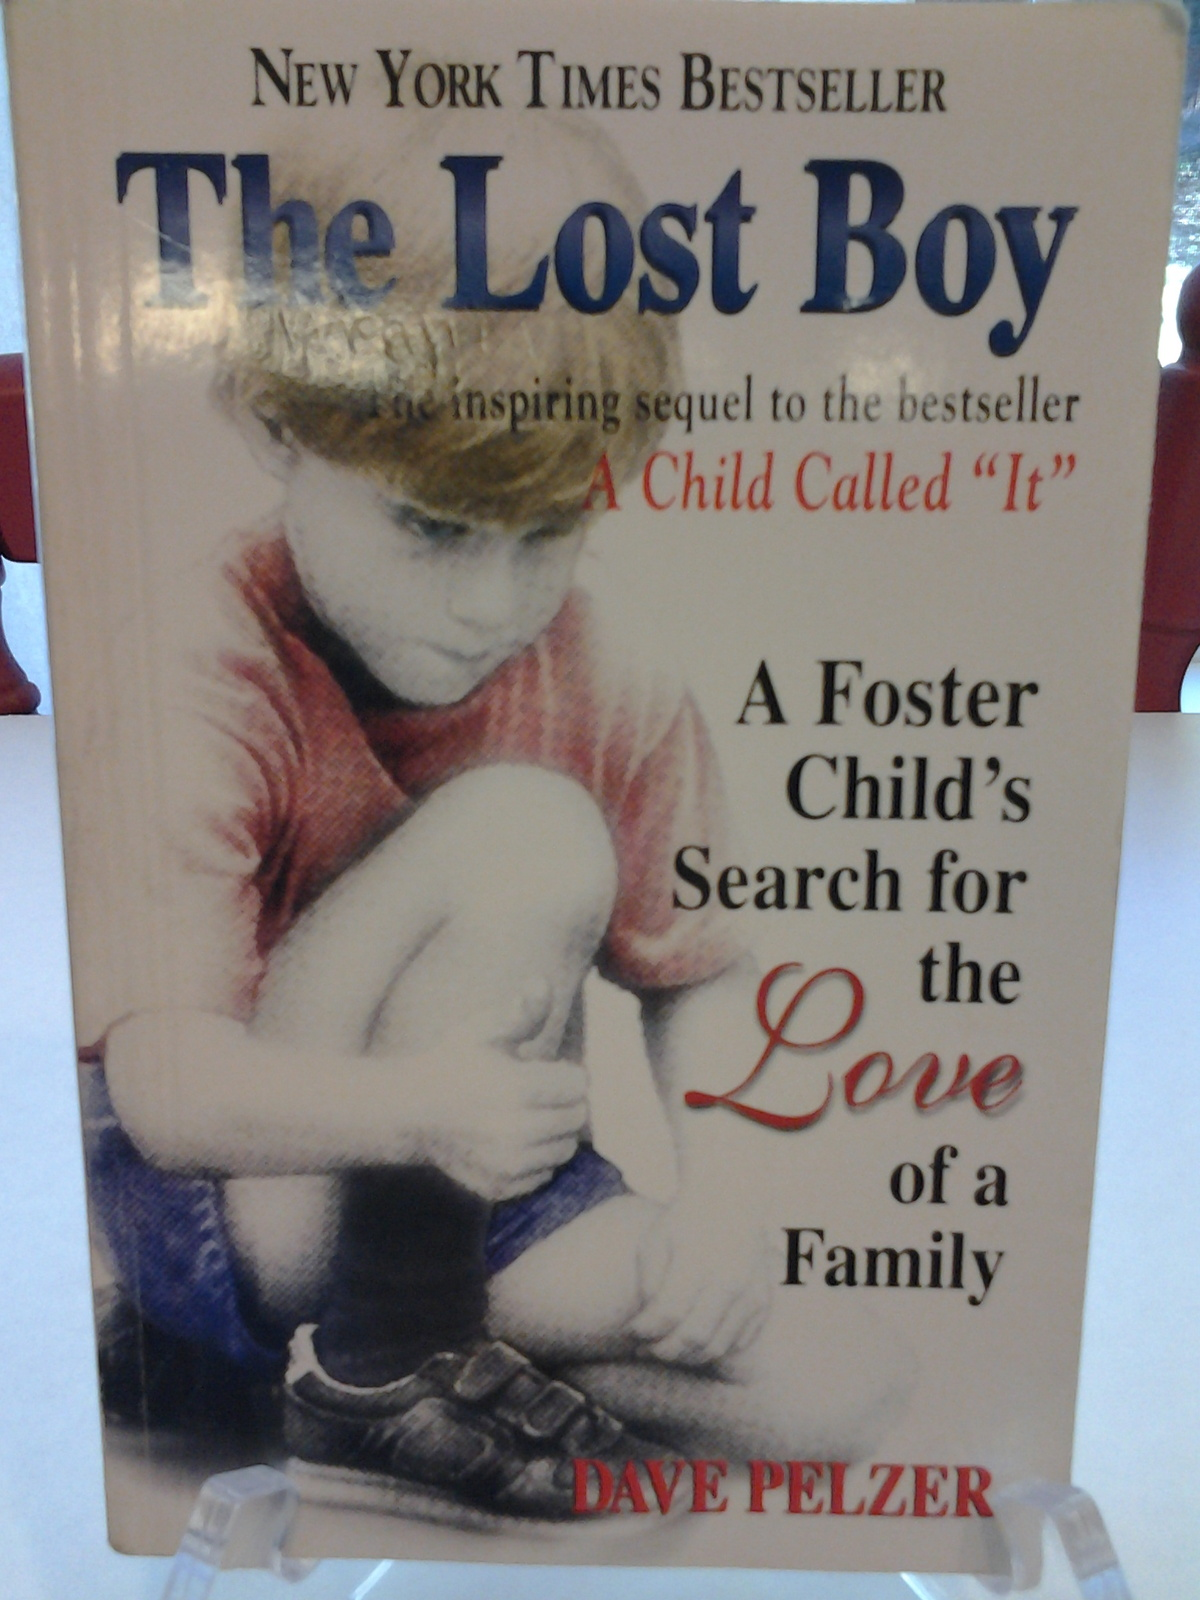 the lost boy by dave pelzer analysis essay